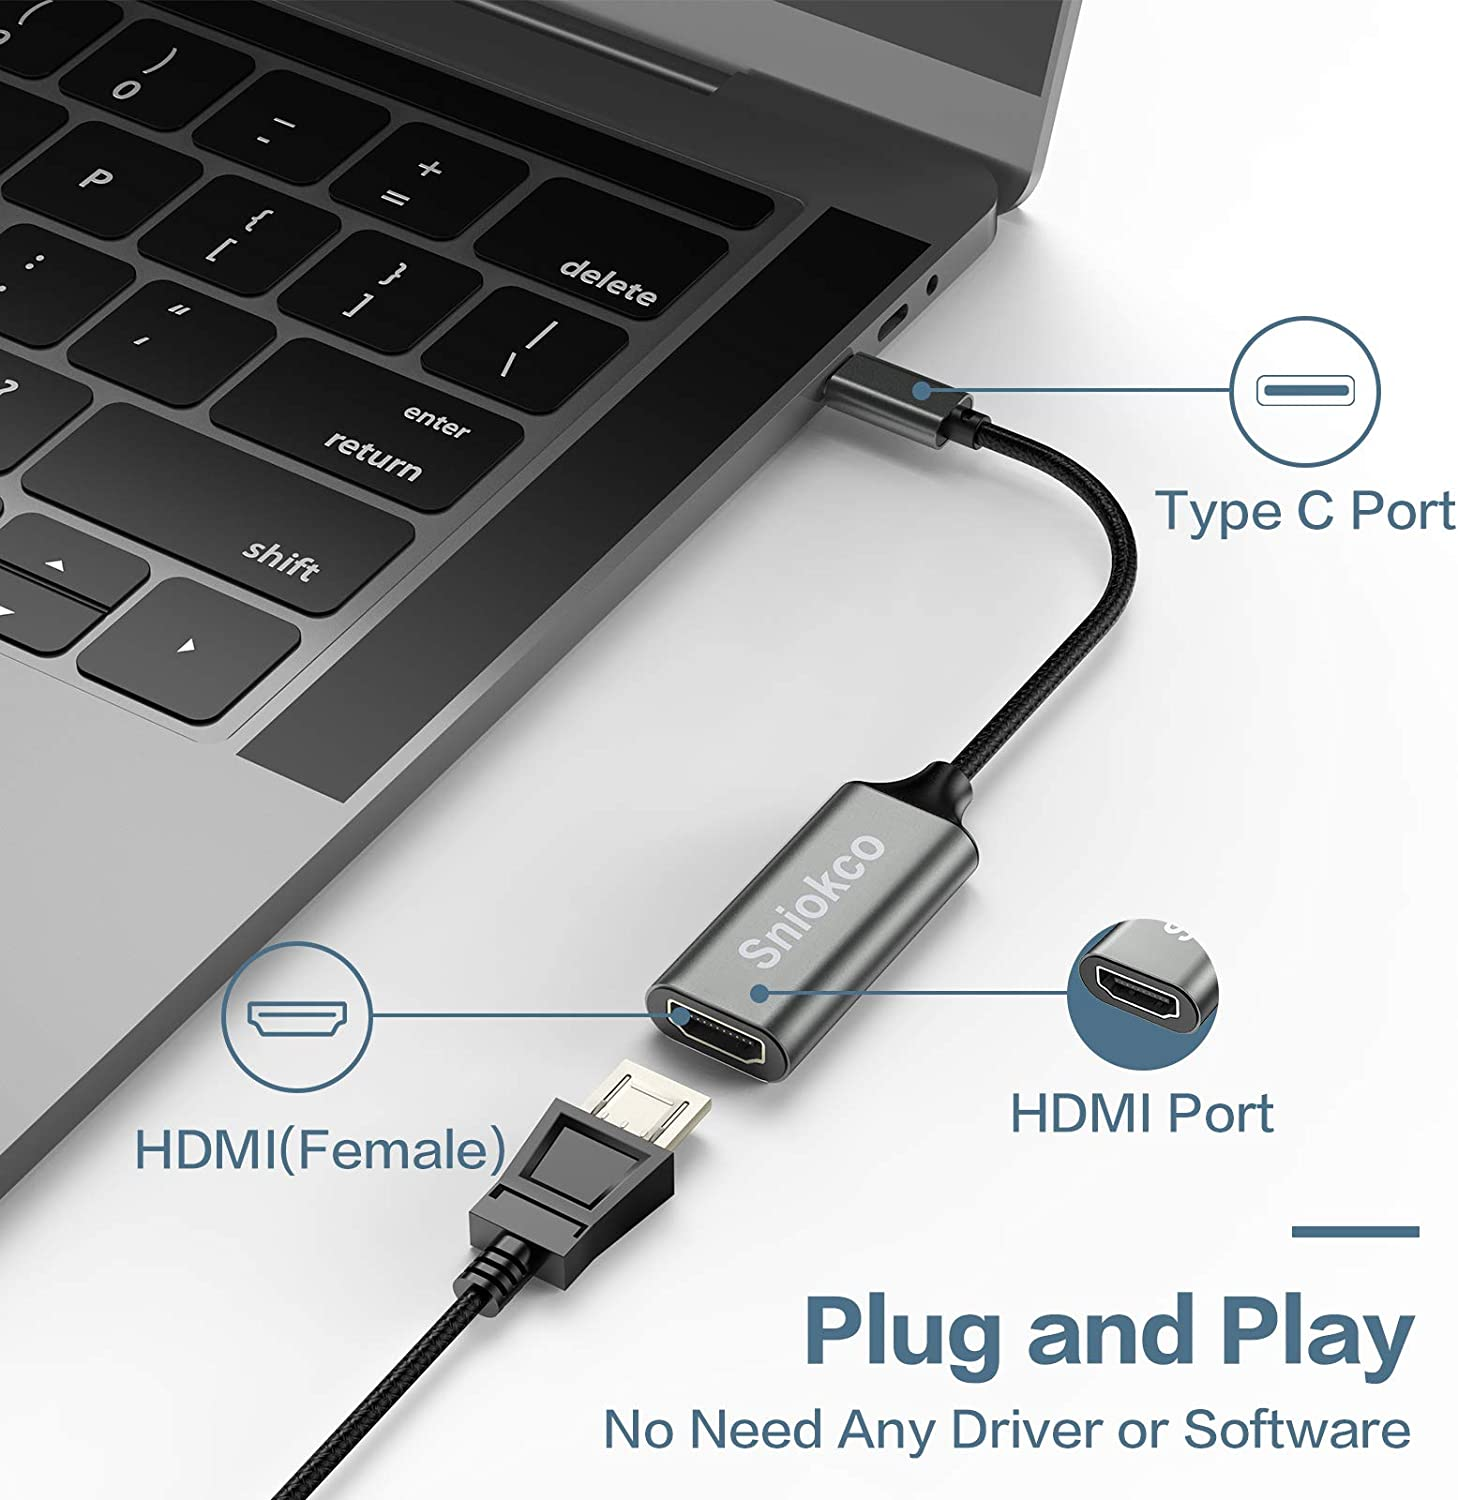 for Home Office Compatible with MacBook Pro Sniokco Type-C to HDMI Adapter XPS Thunderbolt 3 Pad Pro Pixelbook MacBook Air USB C to HDMI Adapter Surface Pro Pad Air G,alaxy S10 S9+ and More